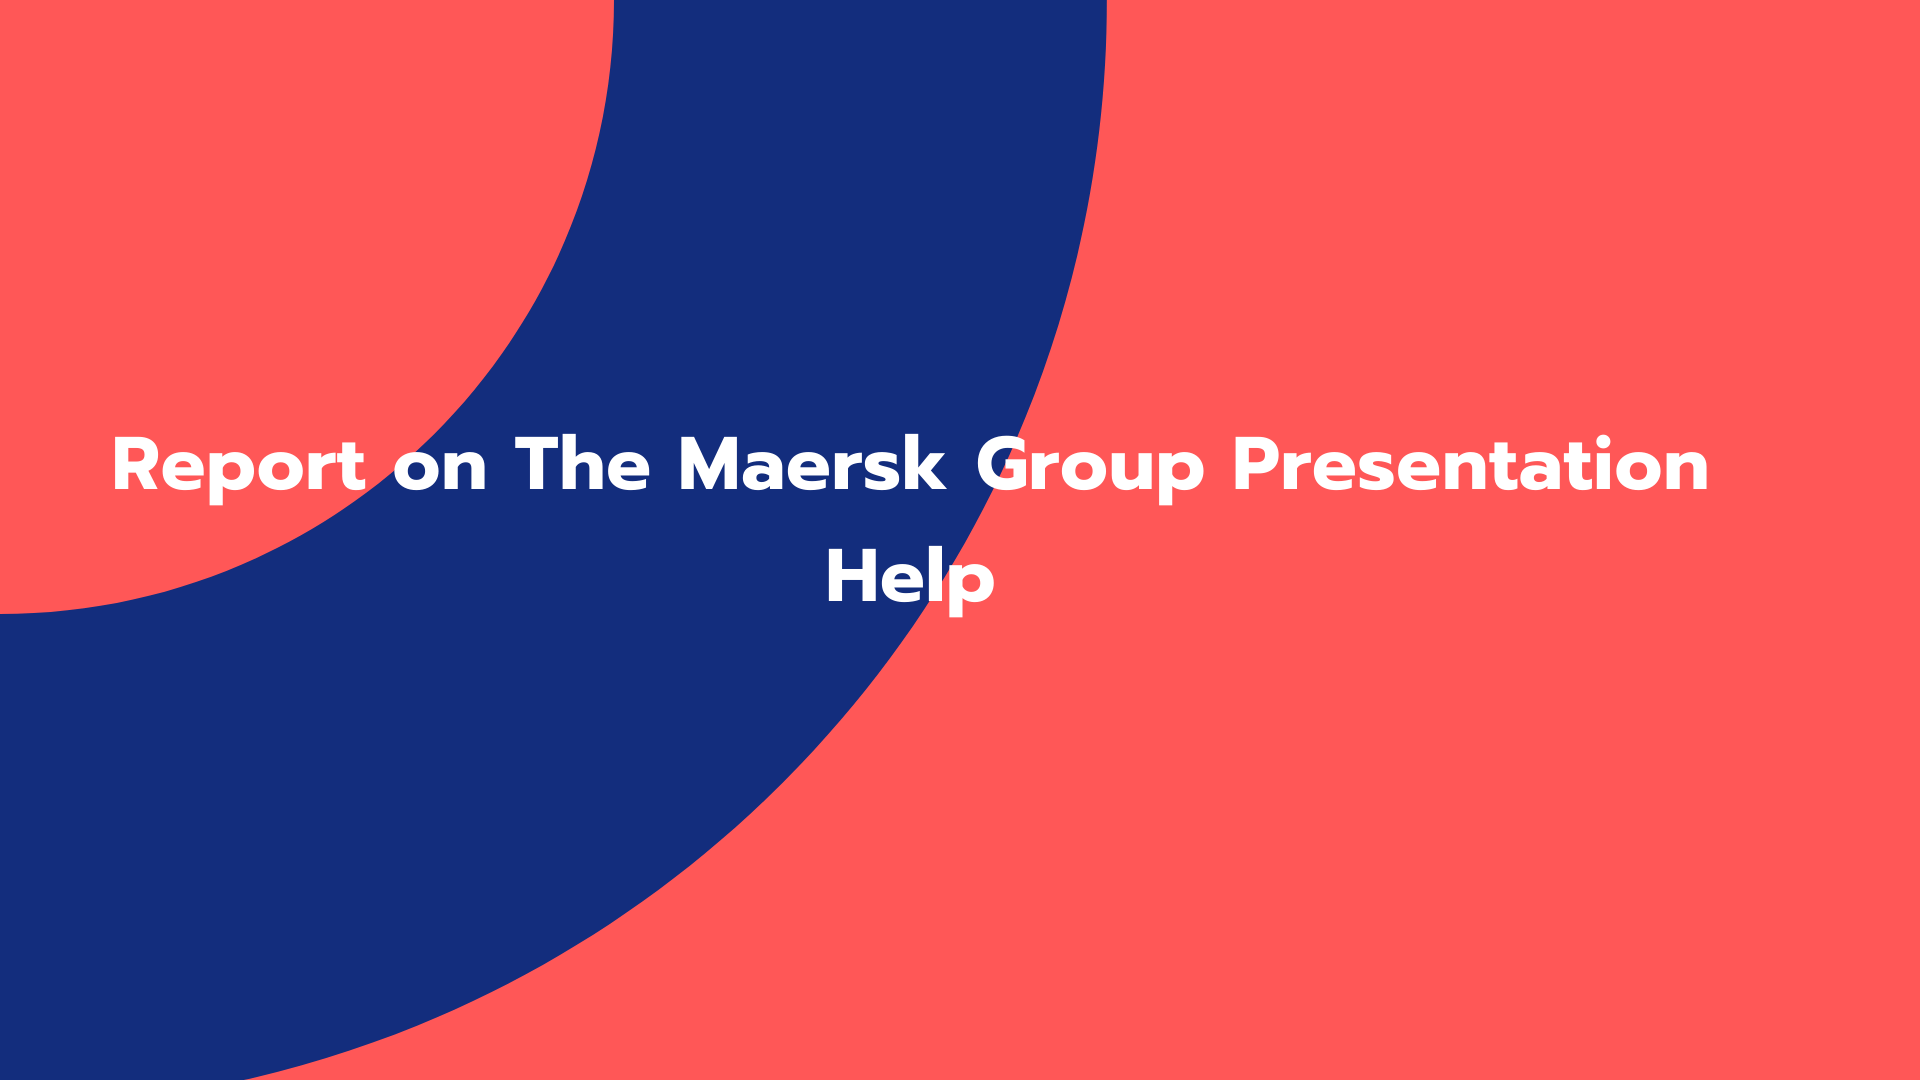 Report on The Maersk Group Presentation Help